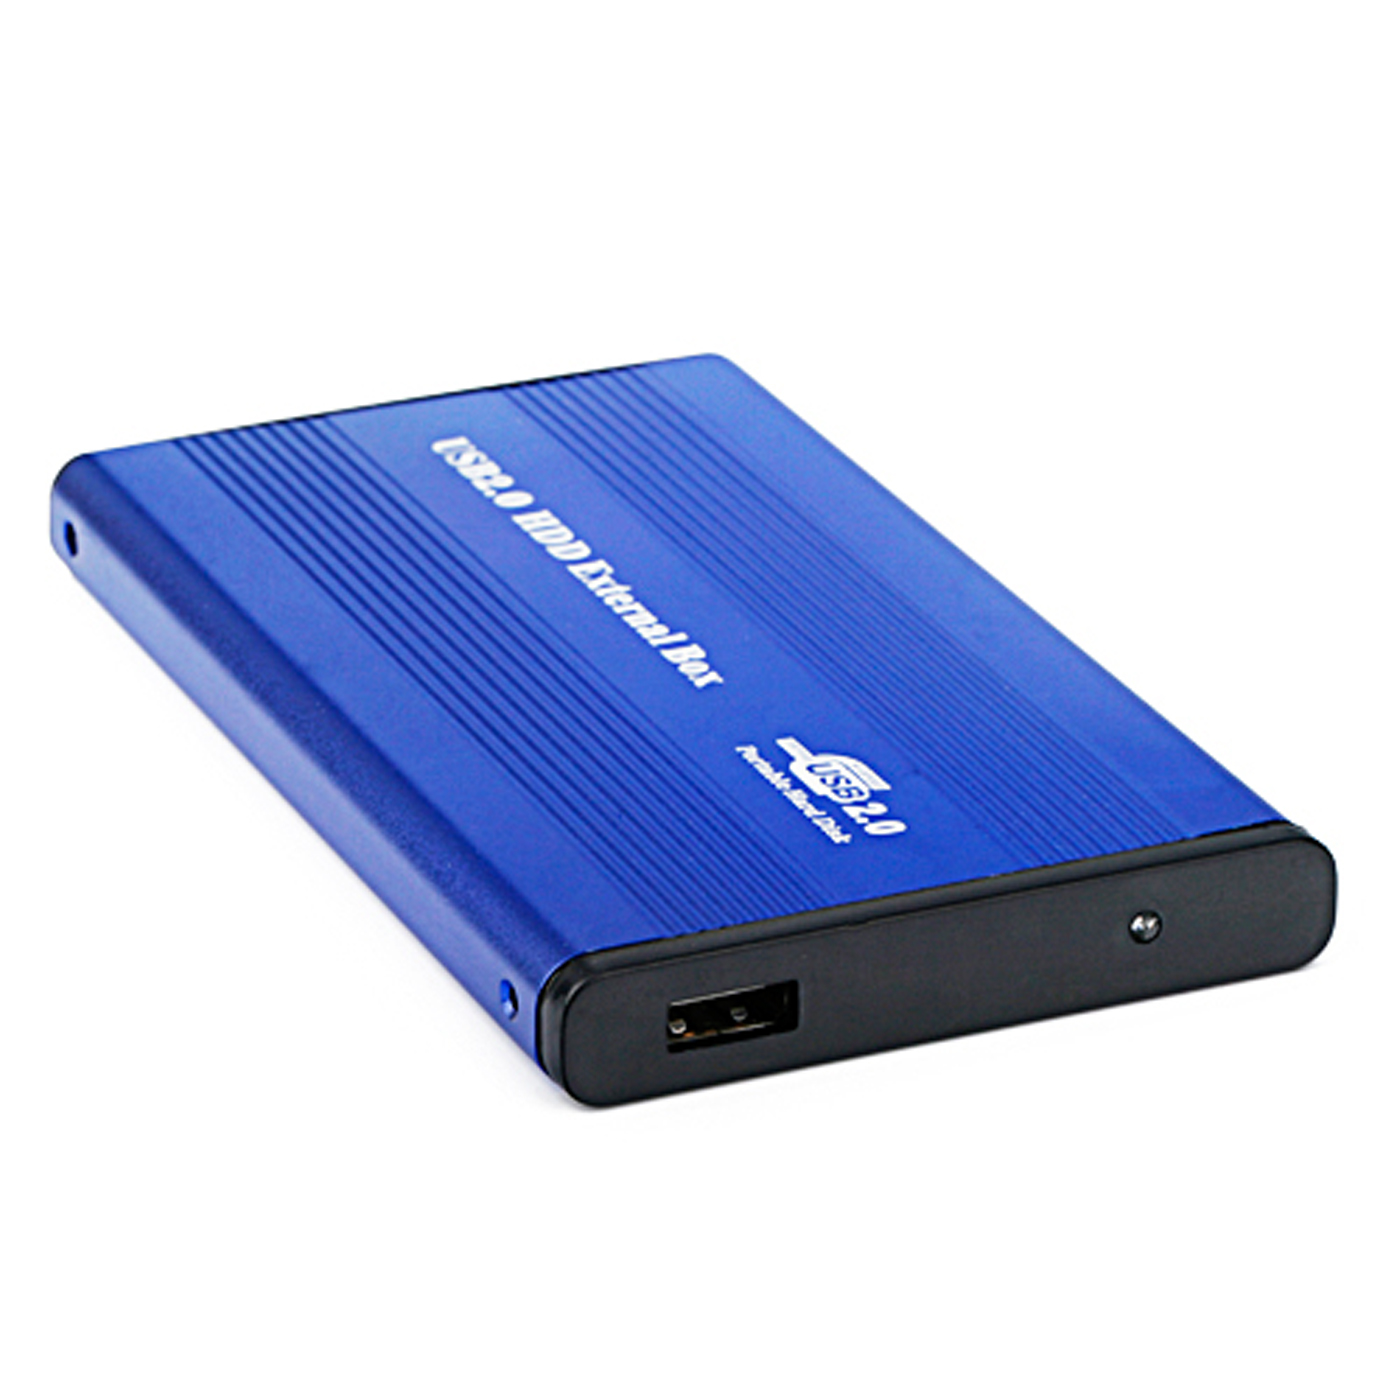 HDE USB 2.0 Aluminum External Hard Drive Enclosure Case Supports 2.5-inch IDE/PATA Drives Up To 500GB (Blue)